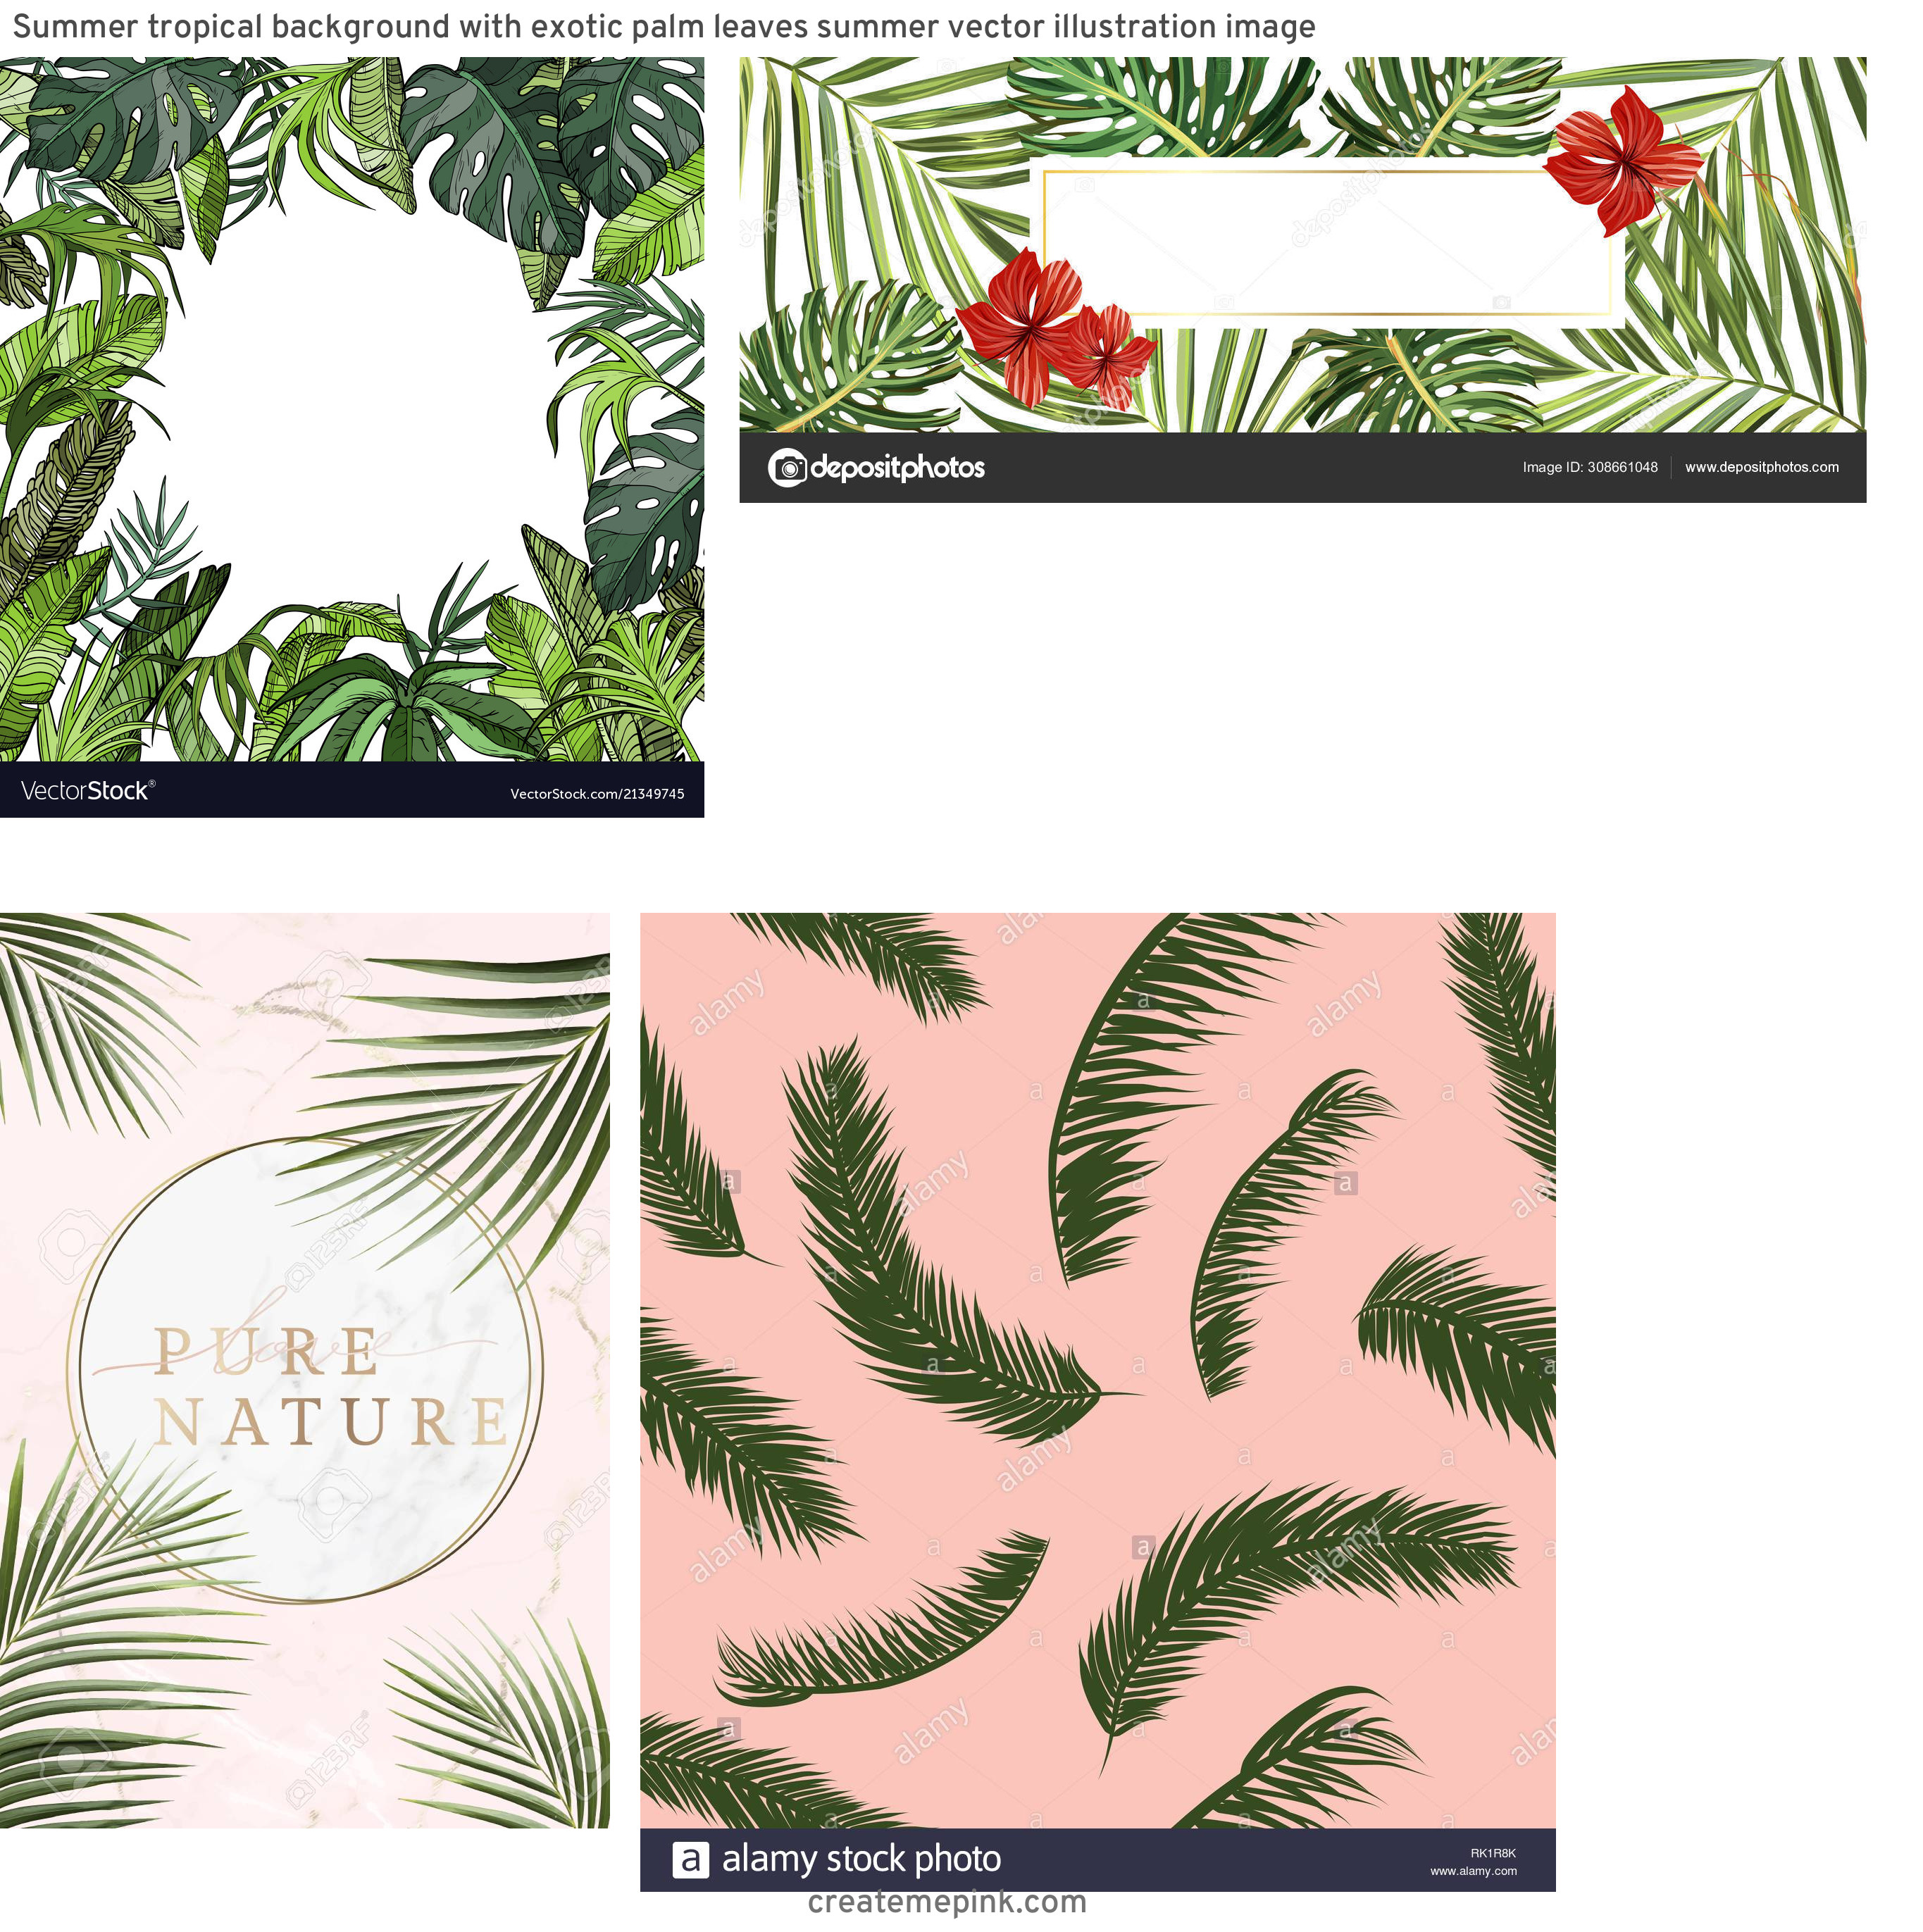 Tropical Background Vector: Summer Tropical Background With Exotic Palm Leaves Summer Vector Illustration Image